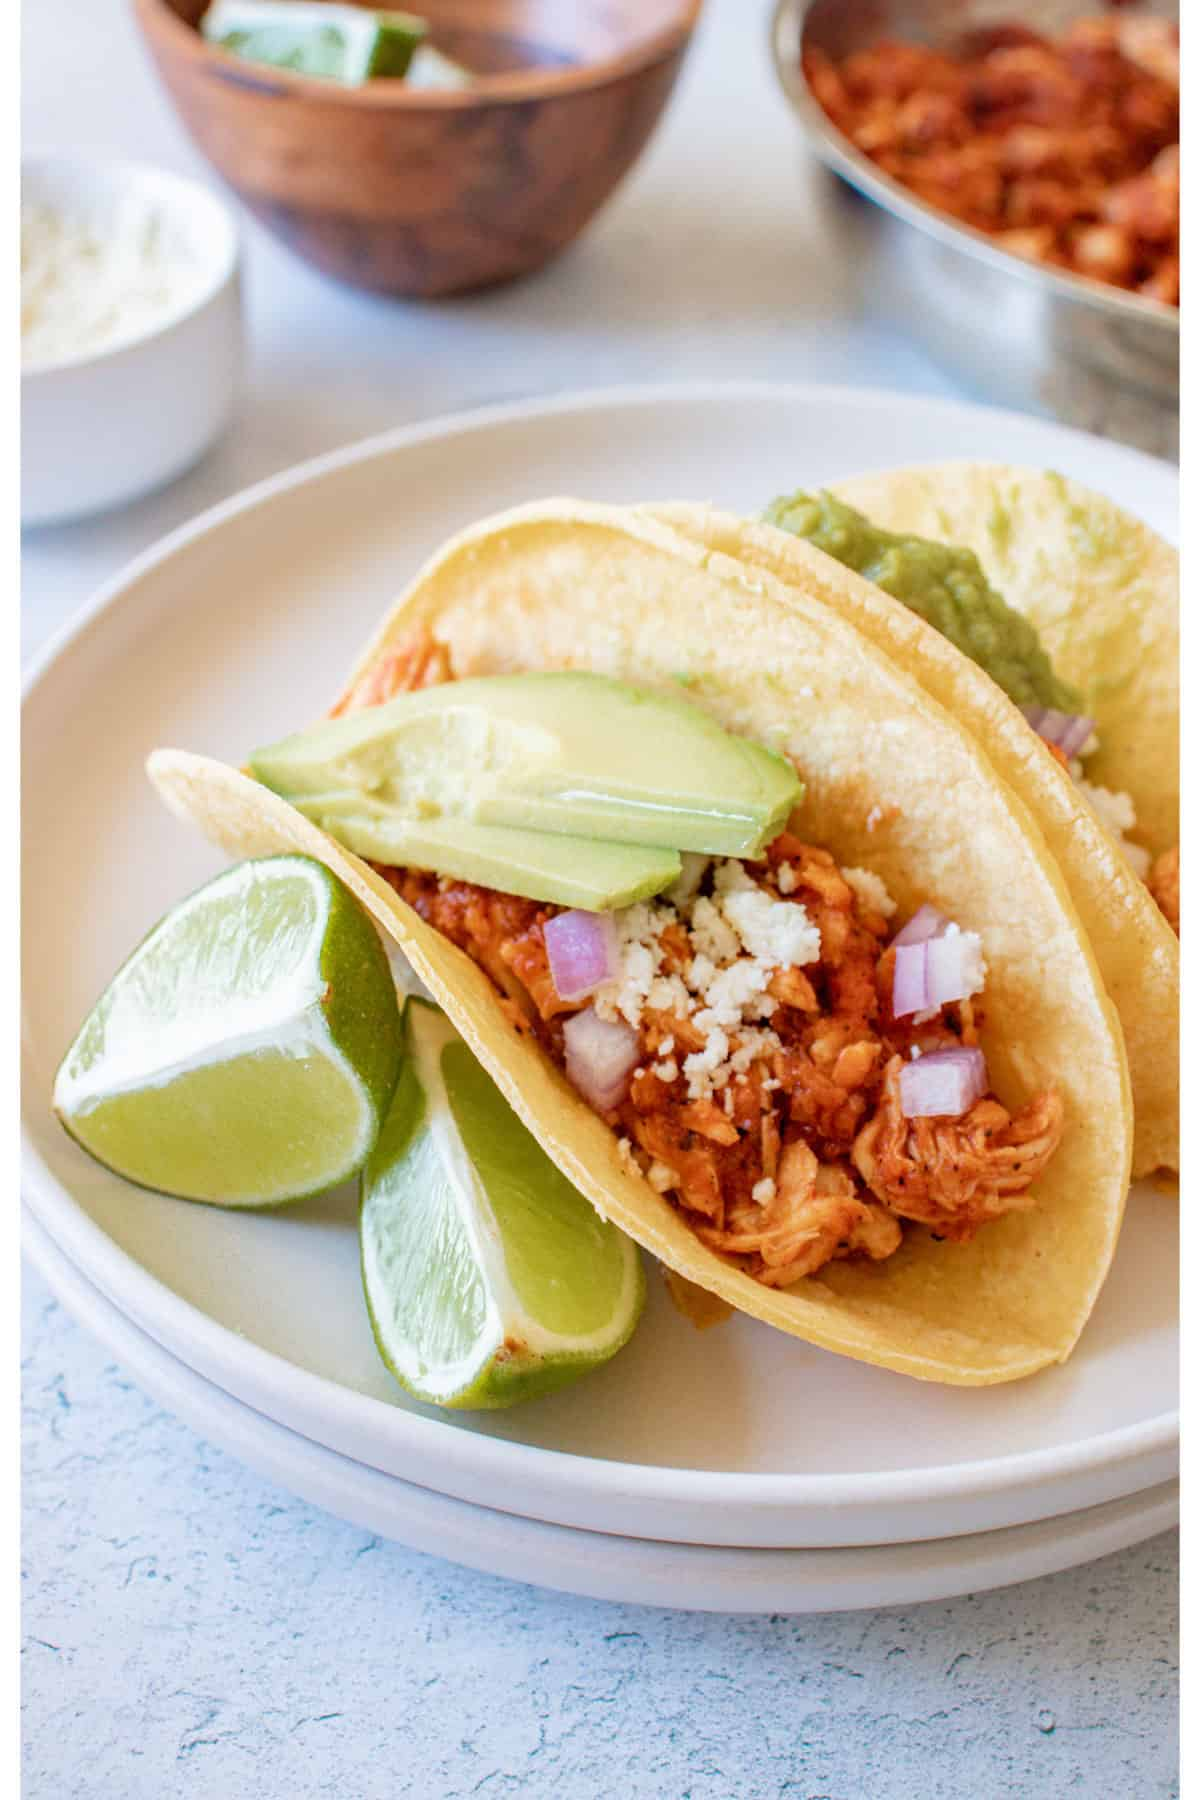 the completed chicken tinga tacos served on a white plate